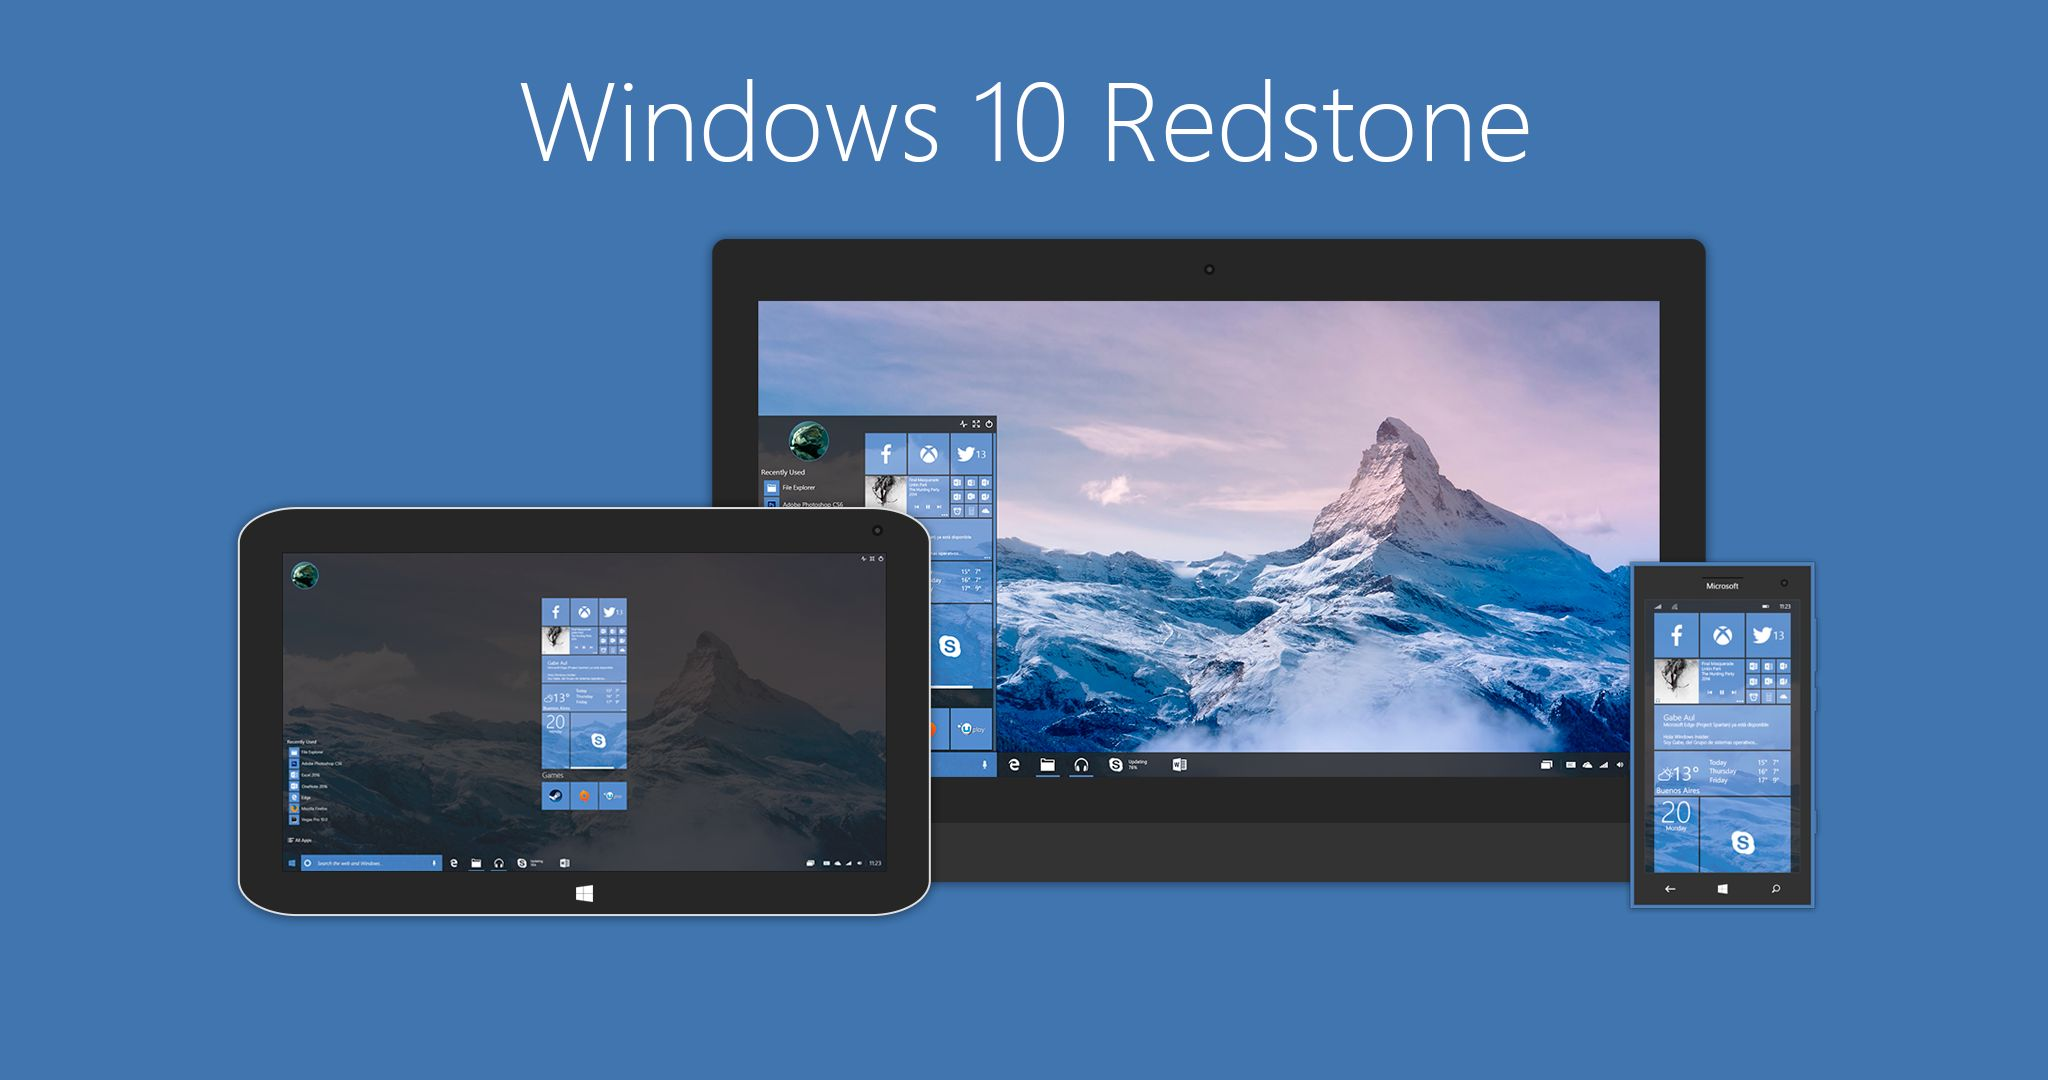 microsoft-to-release-new-windows-10-redstone-preview-build-soon-498455-2